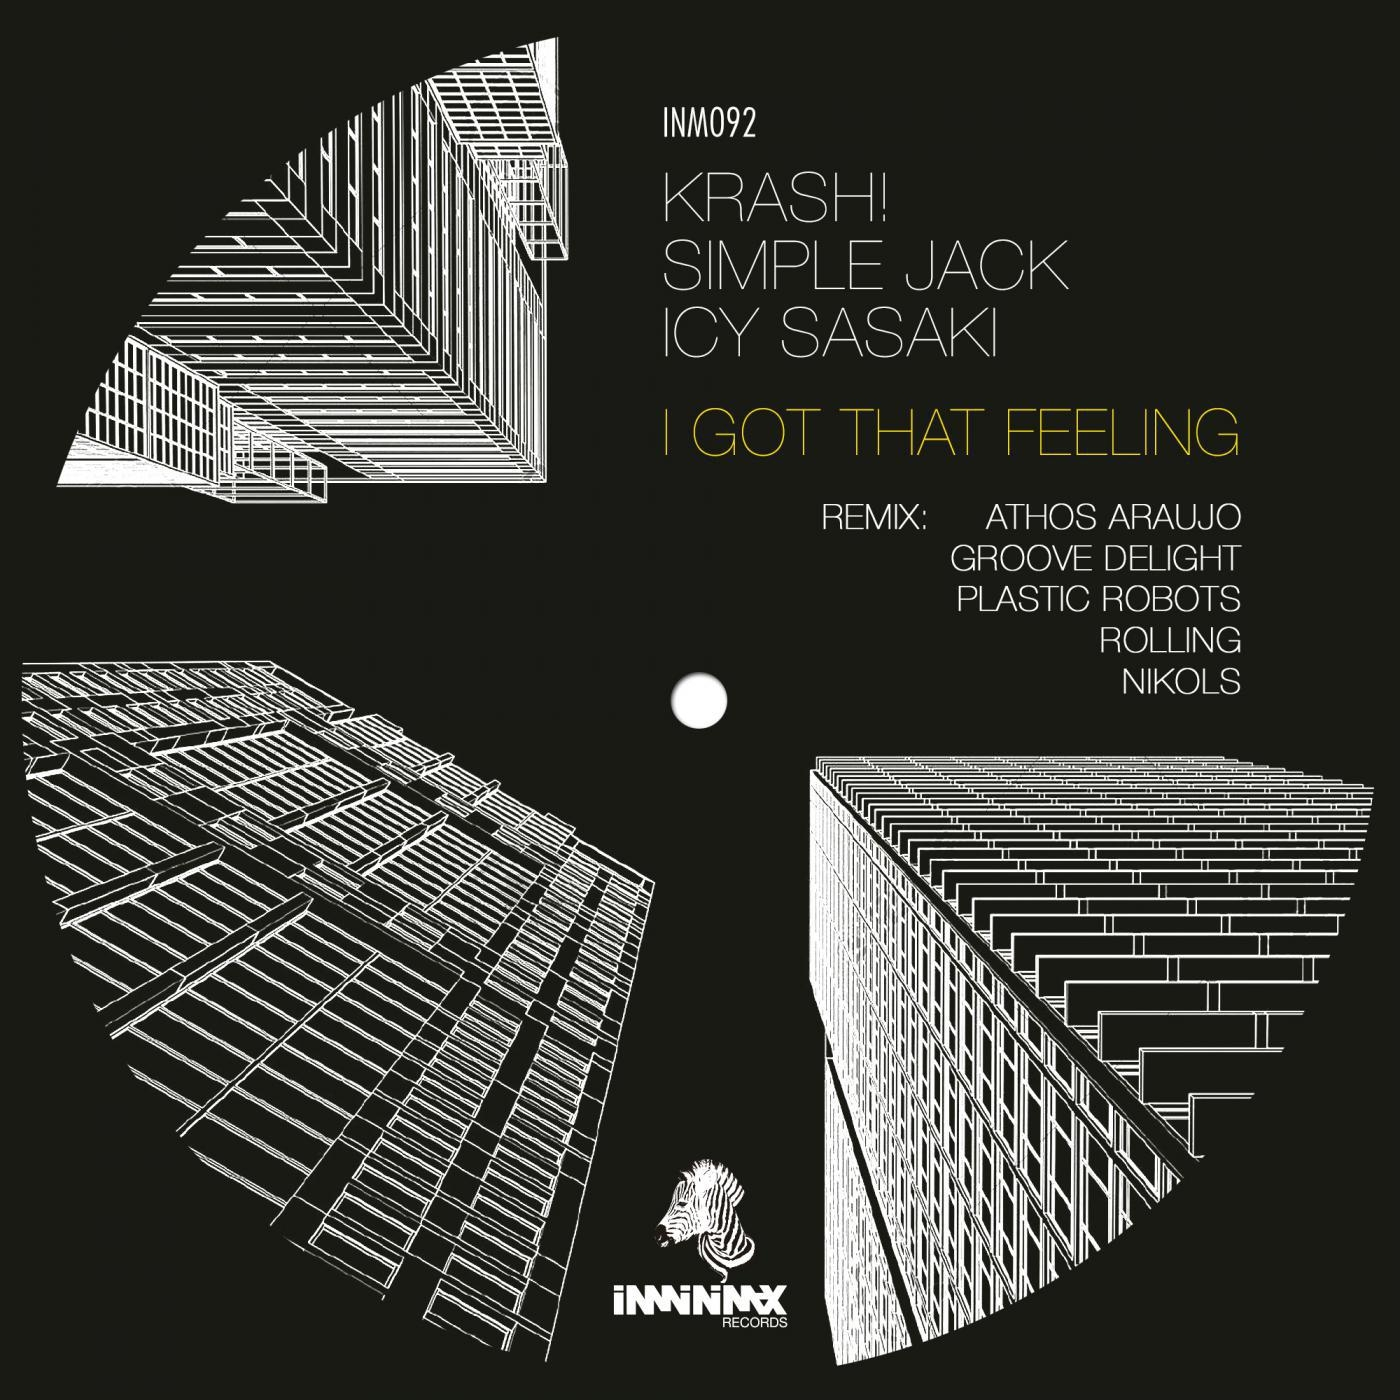 Icy Sasaki & KRASH! & Simple Jack - I Got That Feeling (Athos Araujo Remix)